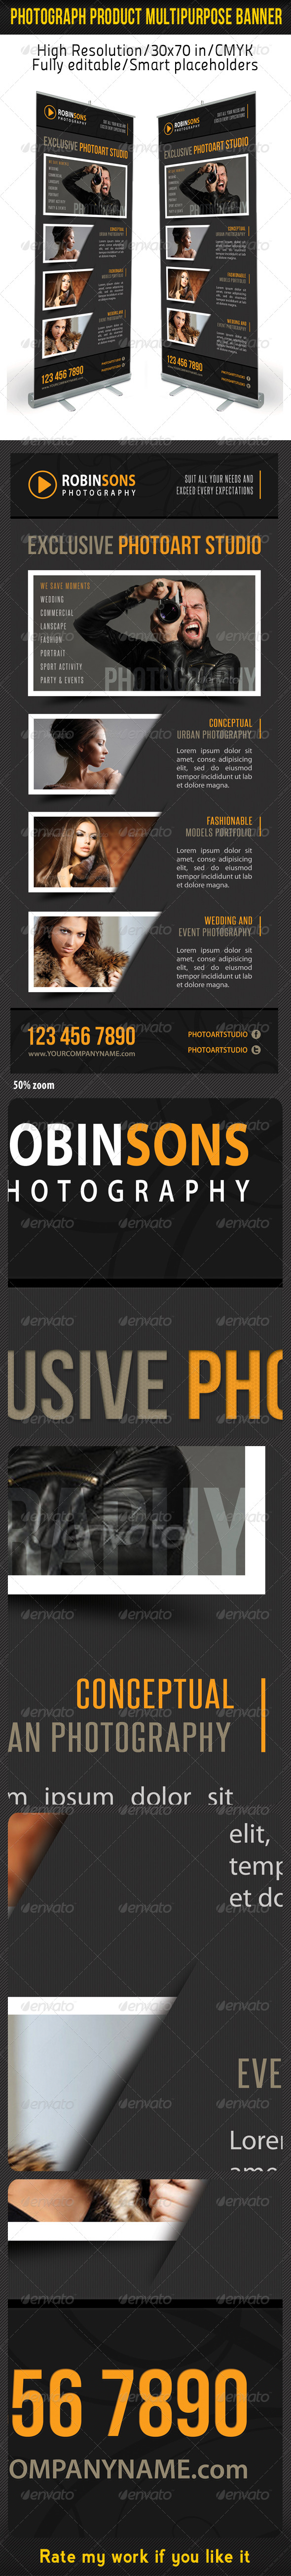 Photograph Product Multipurpose Banner 08 - Signage Print Templates